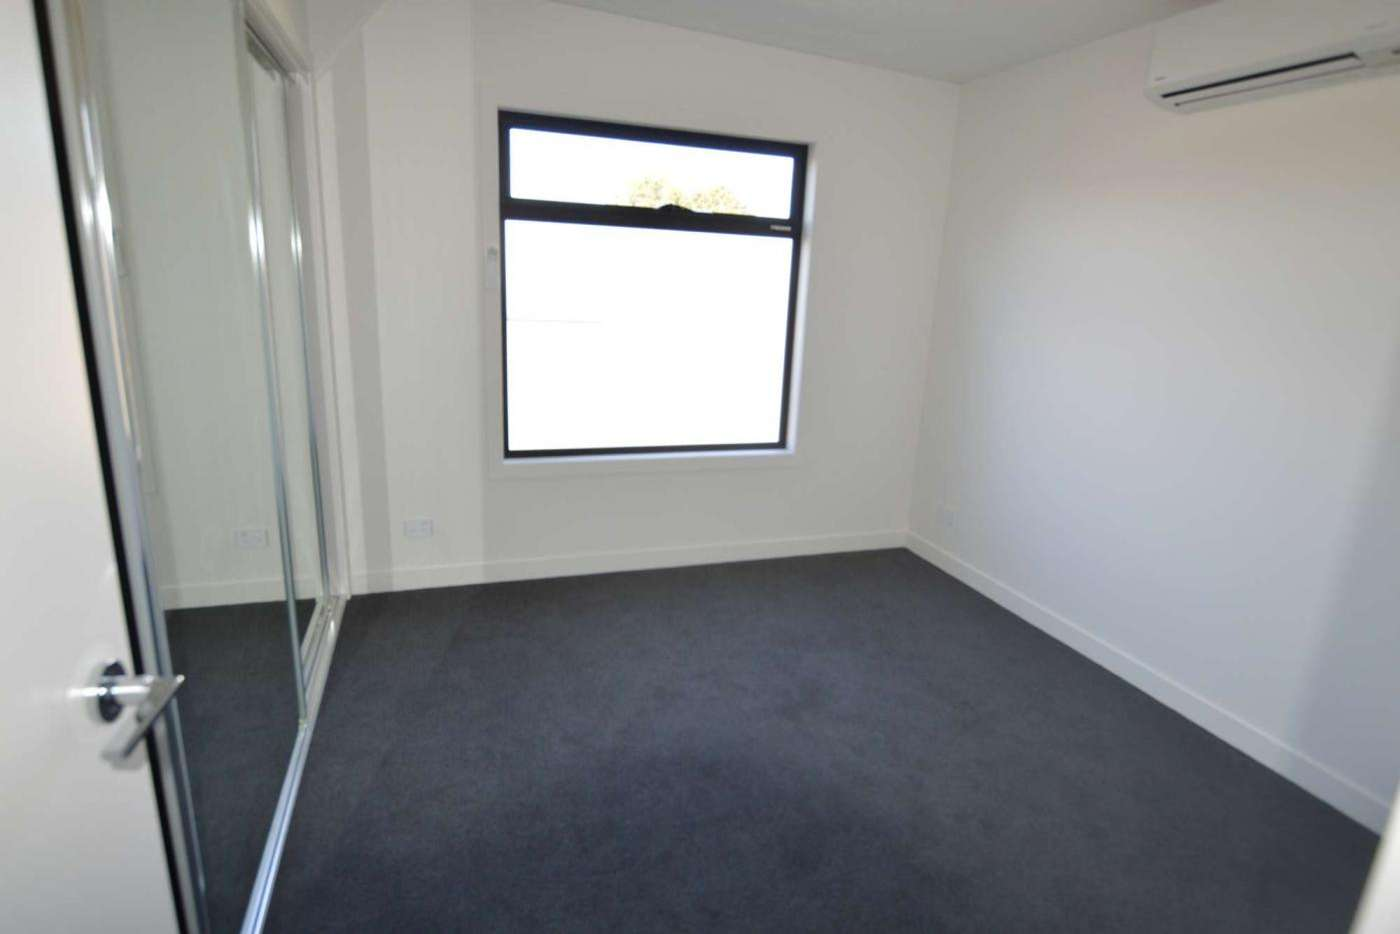 Sixth view of Homely apartment listing, 7/257 Gillies Street, Fairfield VIC 3078